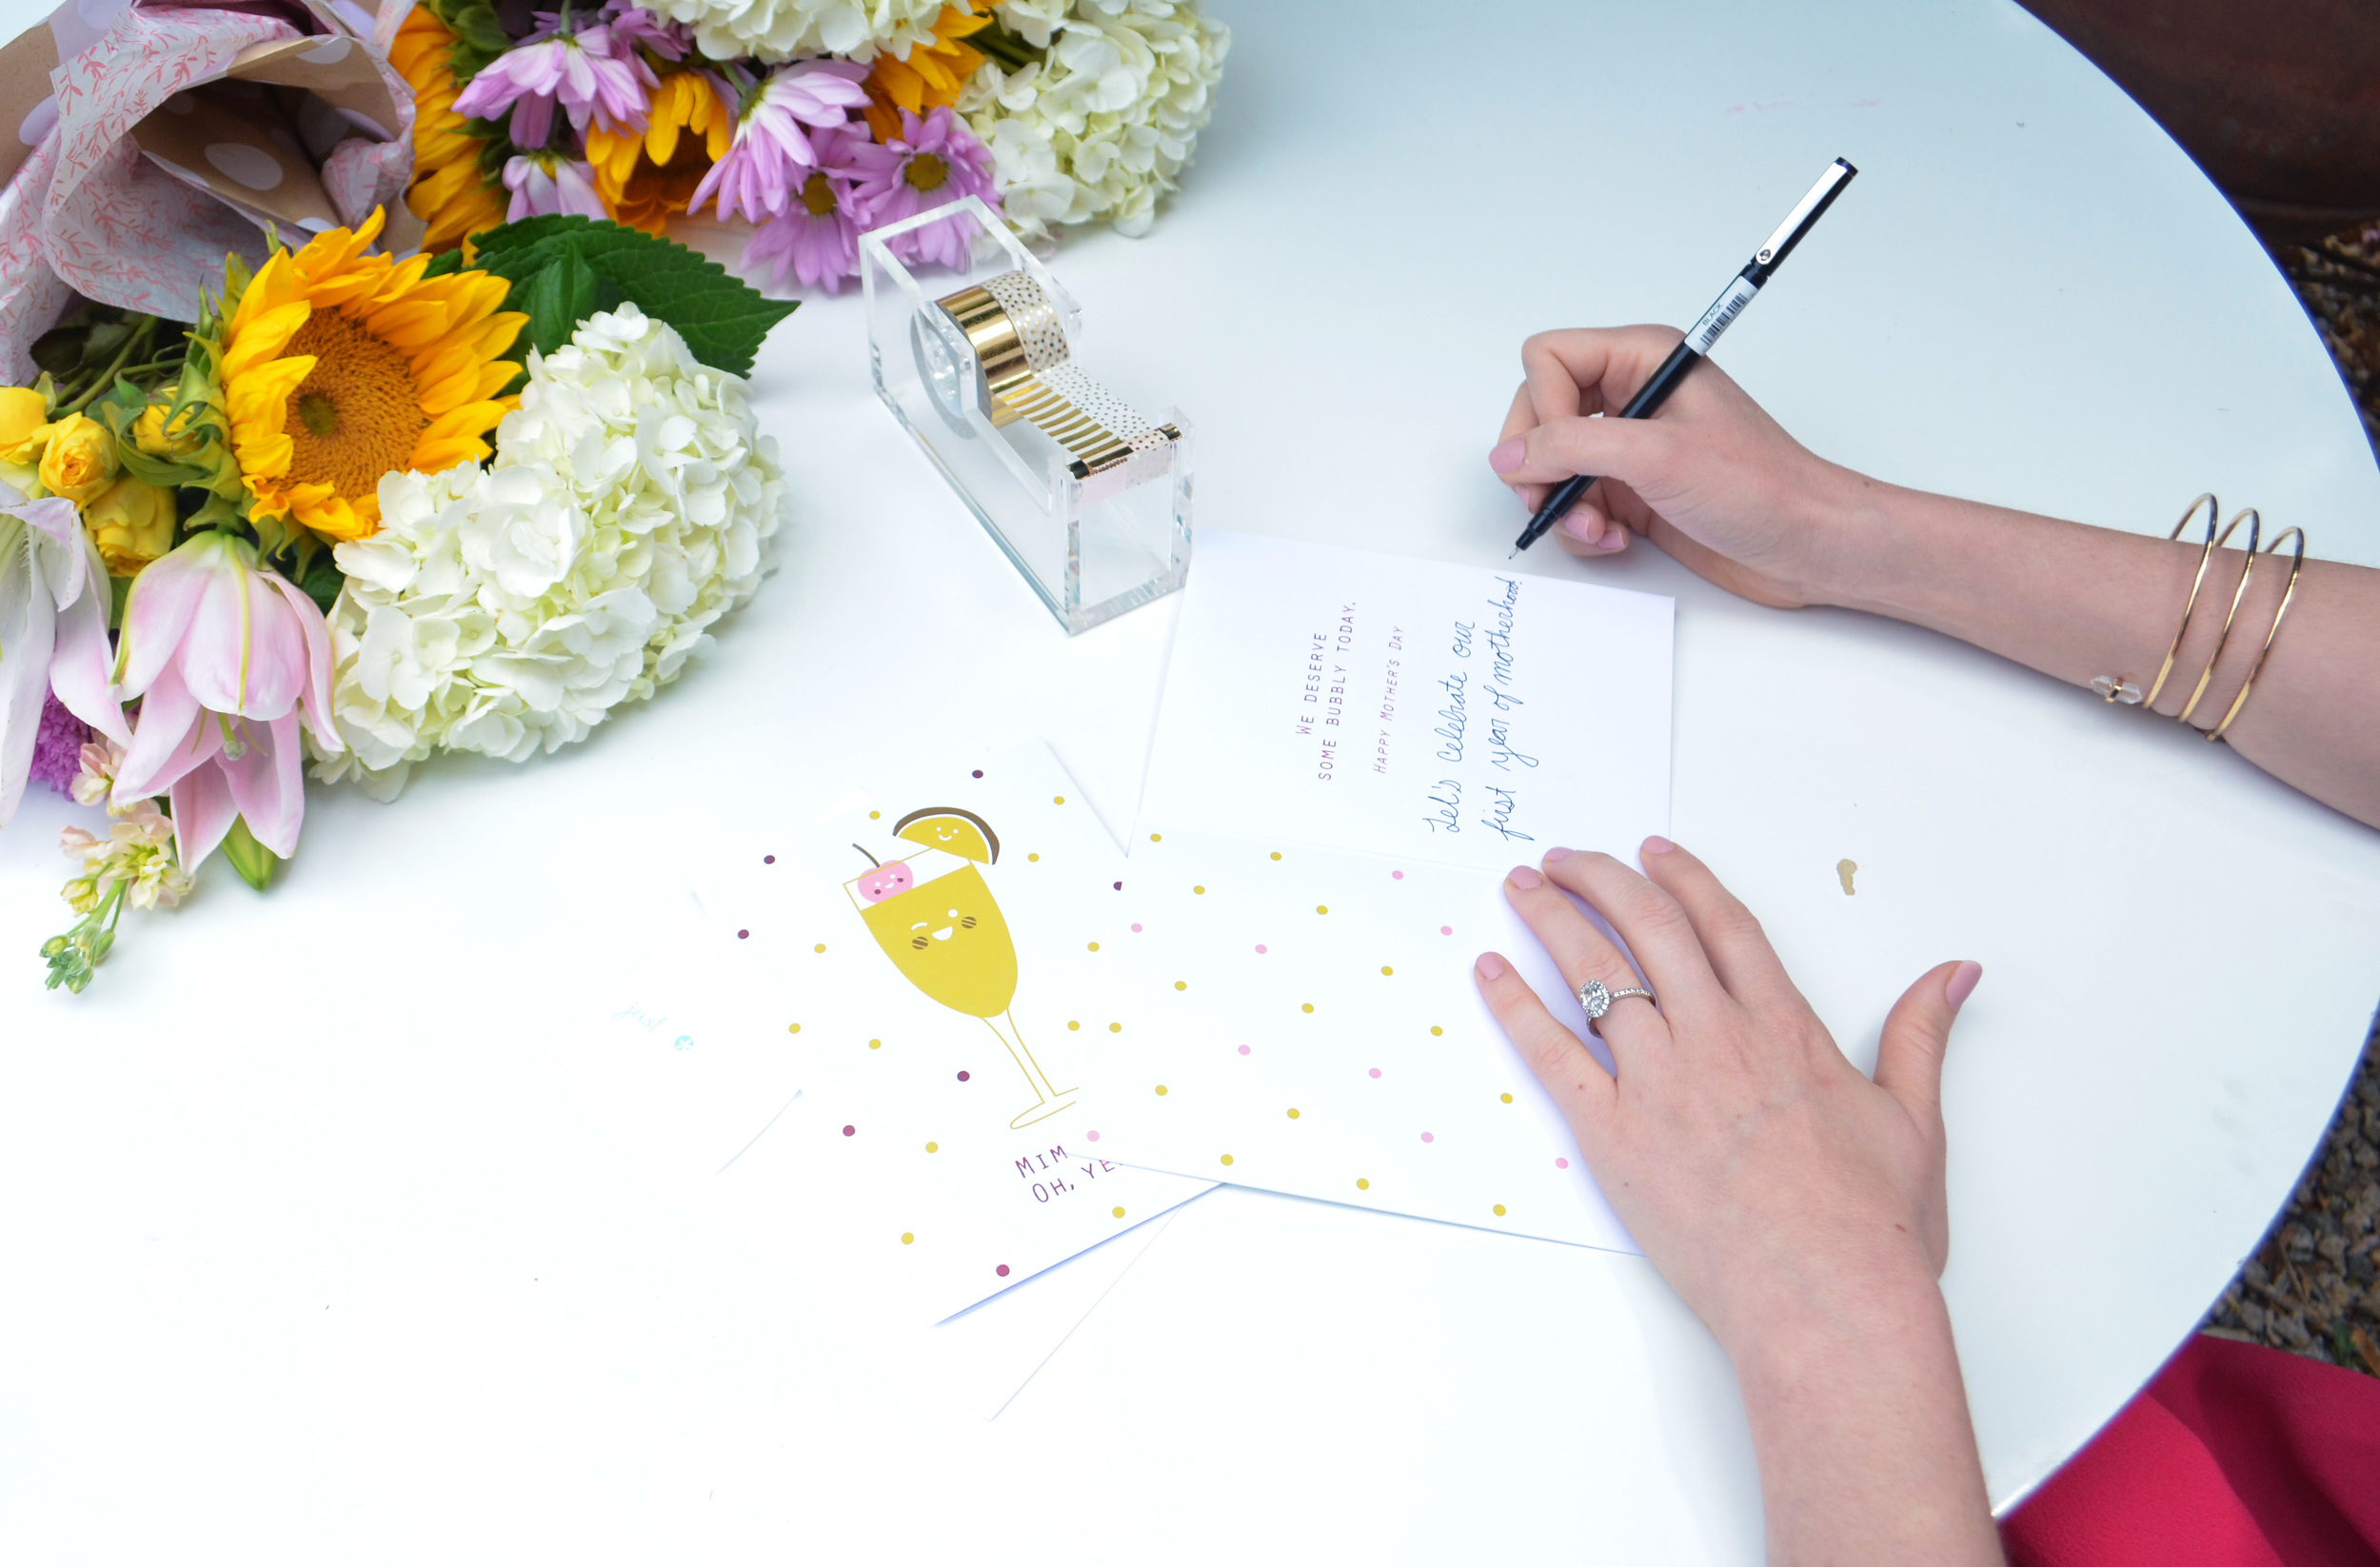 How to Throw a Mother's Day Brunch with Donuts and a DIY Bouquet Bar | Momma Society-The Community of Modern Moms | www.MommaSociety.com